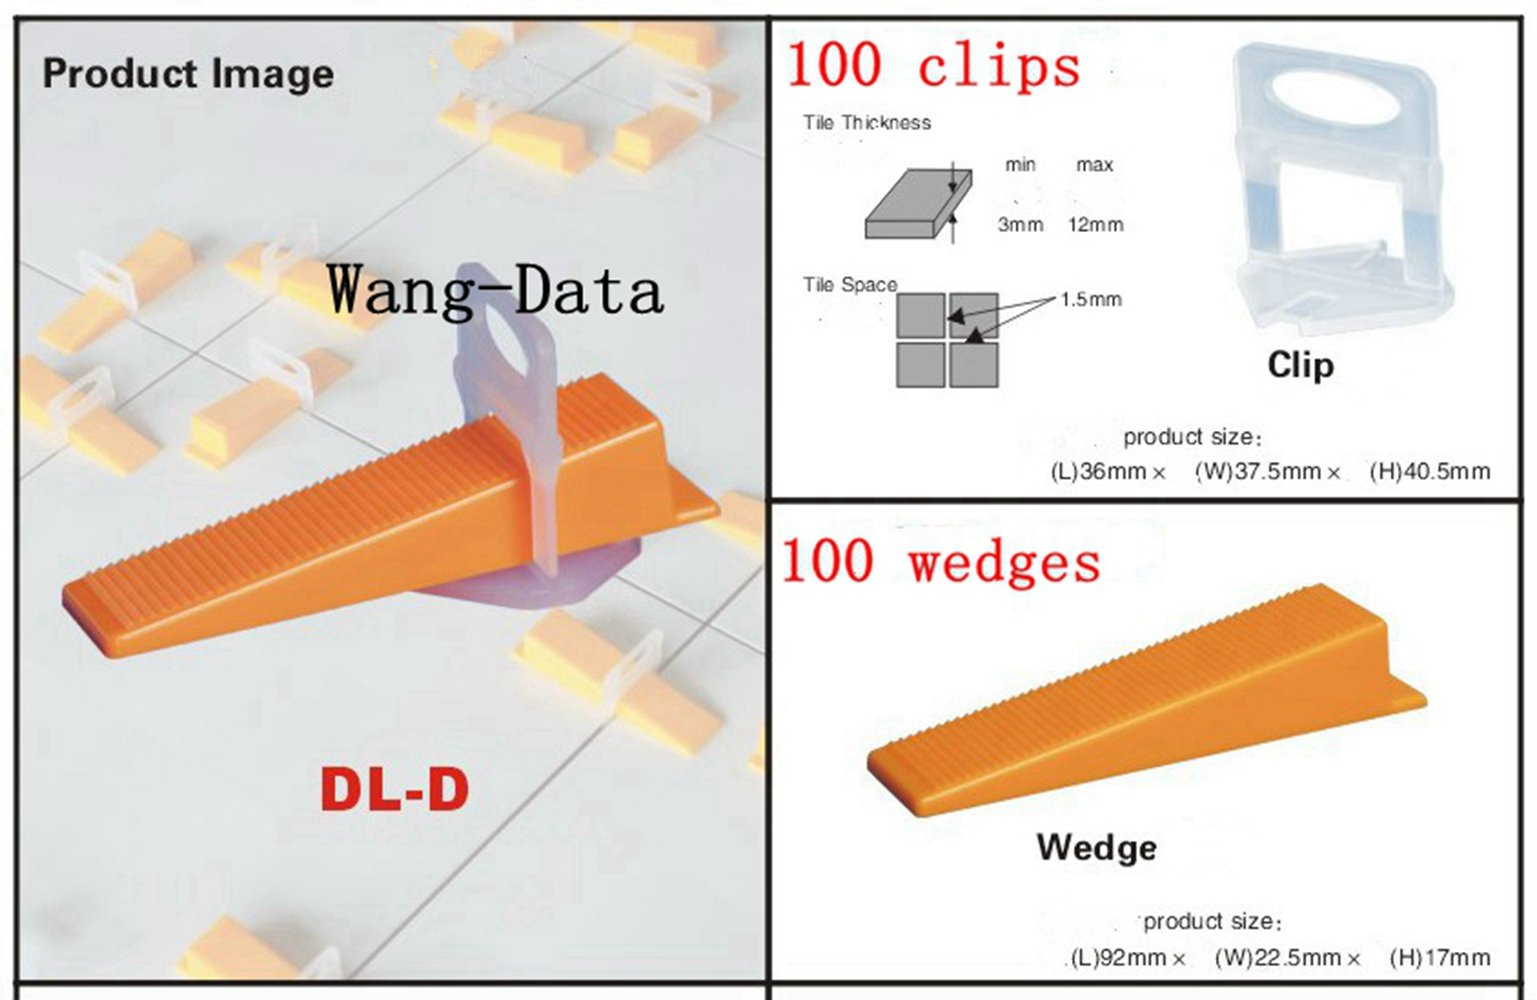 Wang-Data 200Pcs Tile Flat Leveling System 100Clips + 100 Wedges Wall Floor Balance Tool